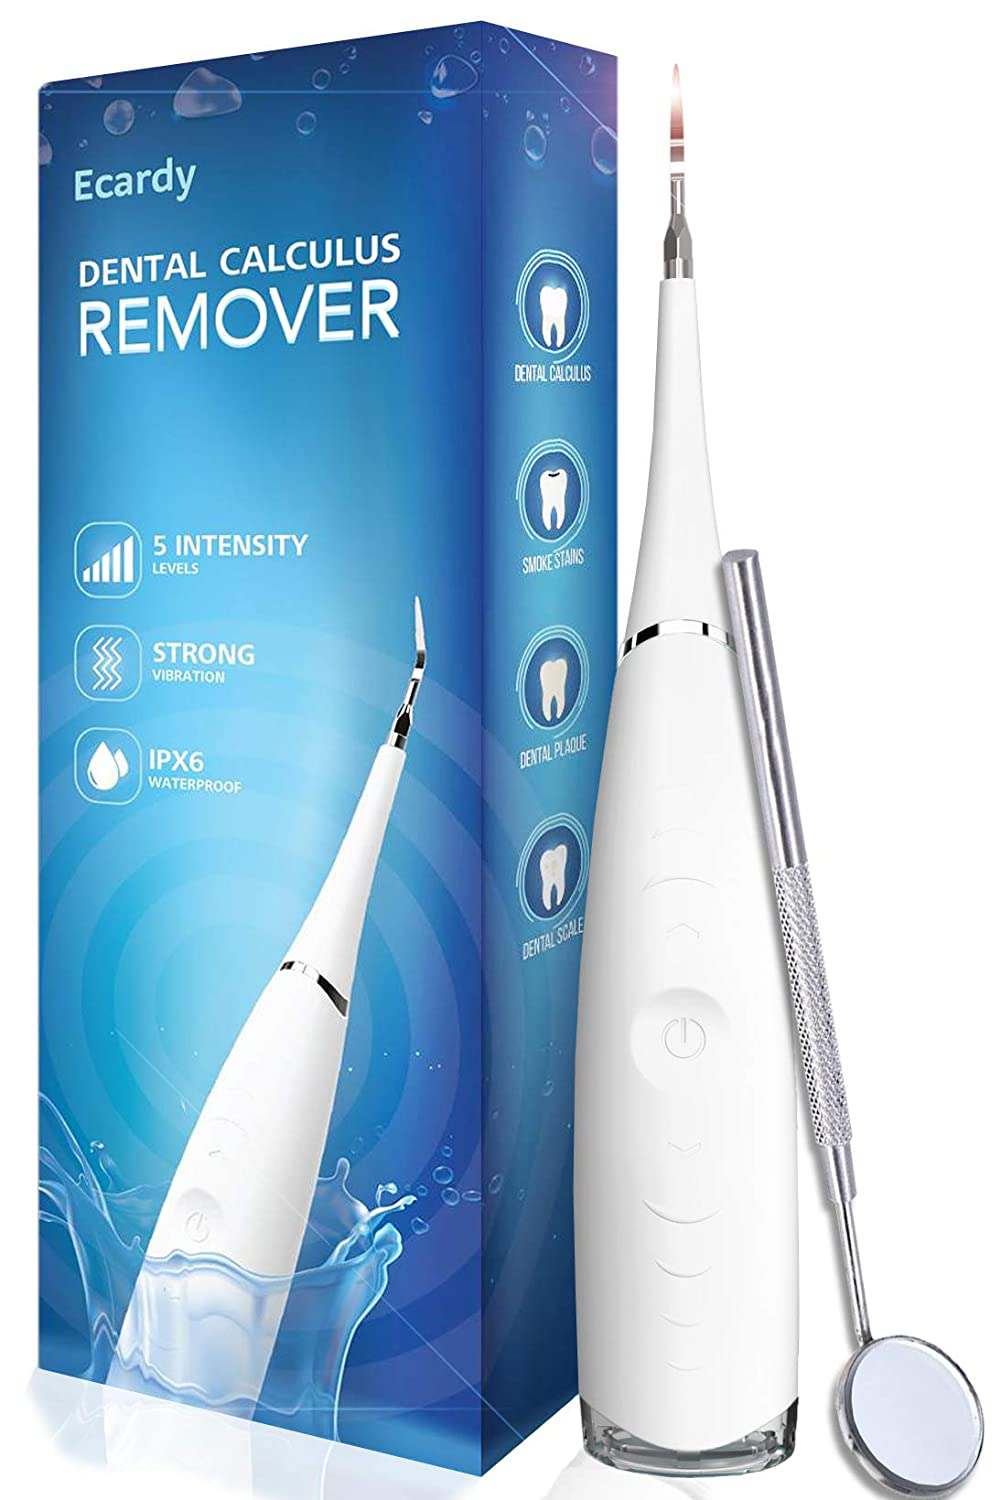 Plaque Remover For Teeth Cleaning Kit - Gum Stimulator - Dental Calculus Remover - Removes Tartar, Calculus, Stain, Plaque - Teeth Cleaning Tool